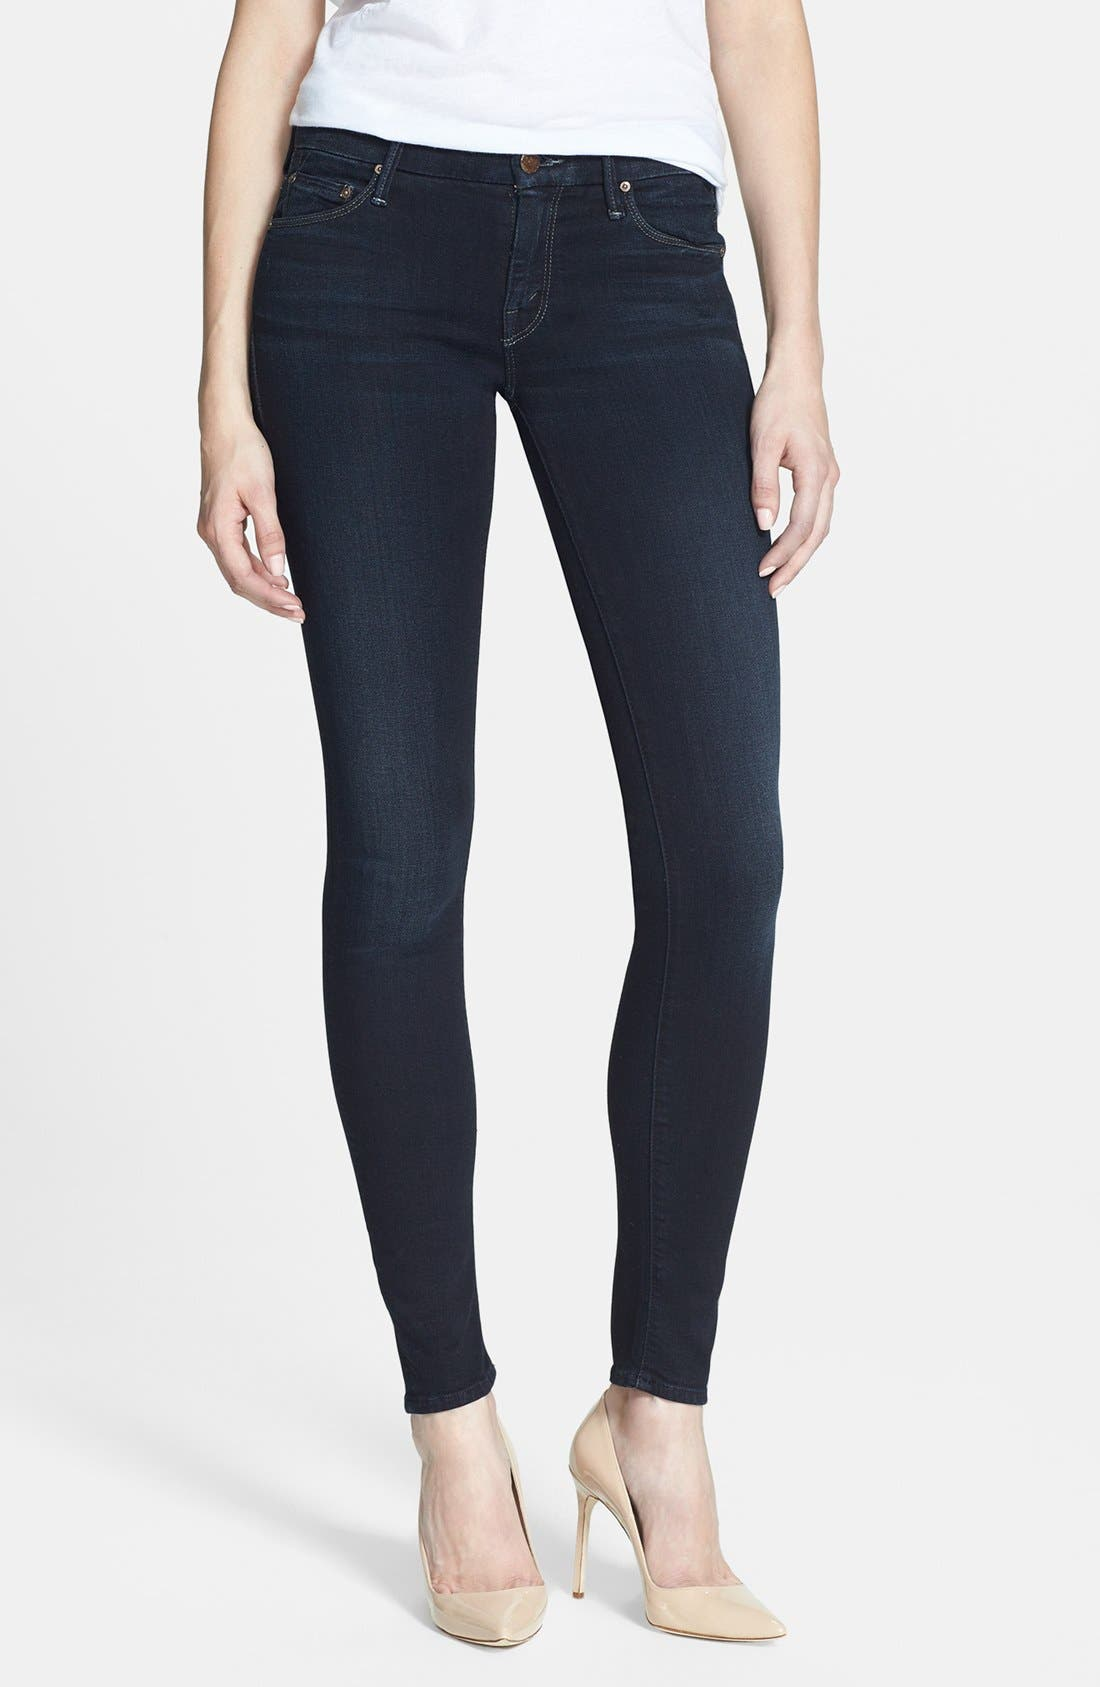 'The Looker' Stretch Skinny Jeans,                             Main thumbnail 1, color,                             Bittersweet